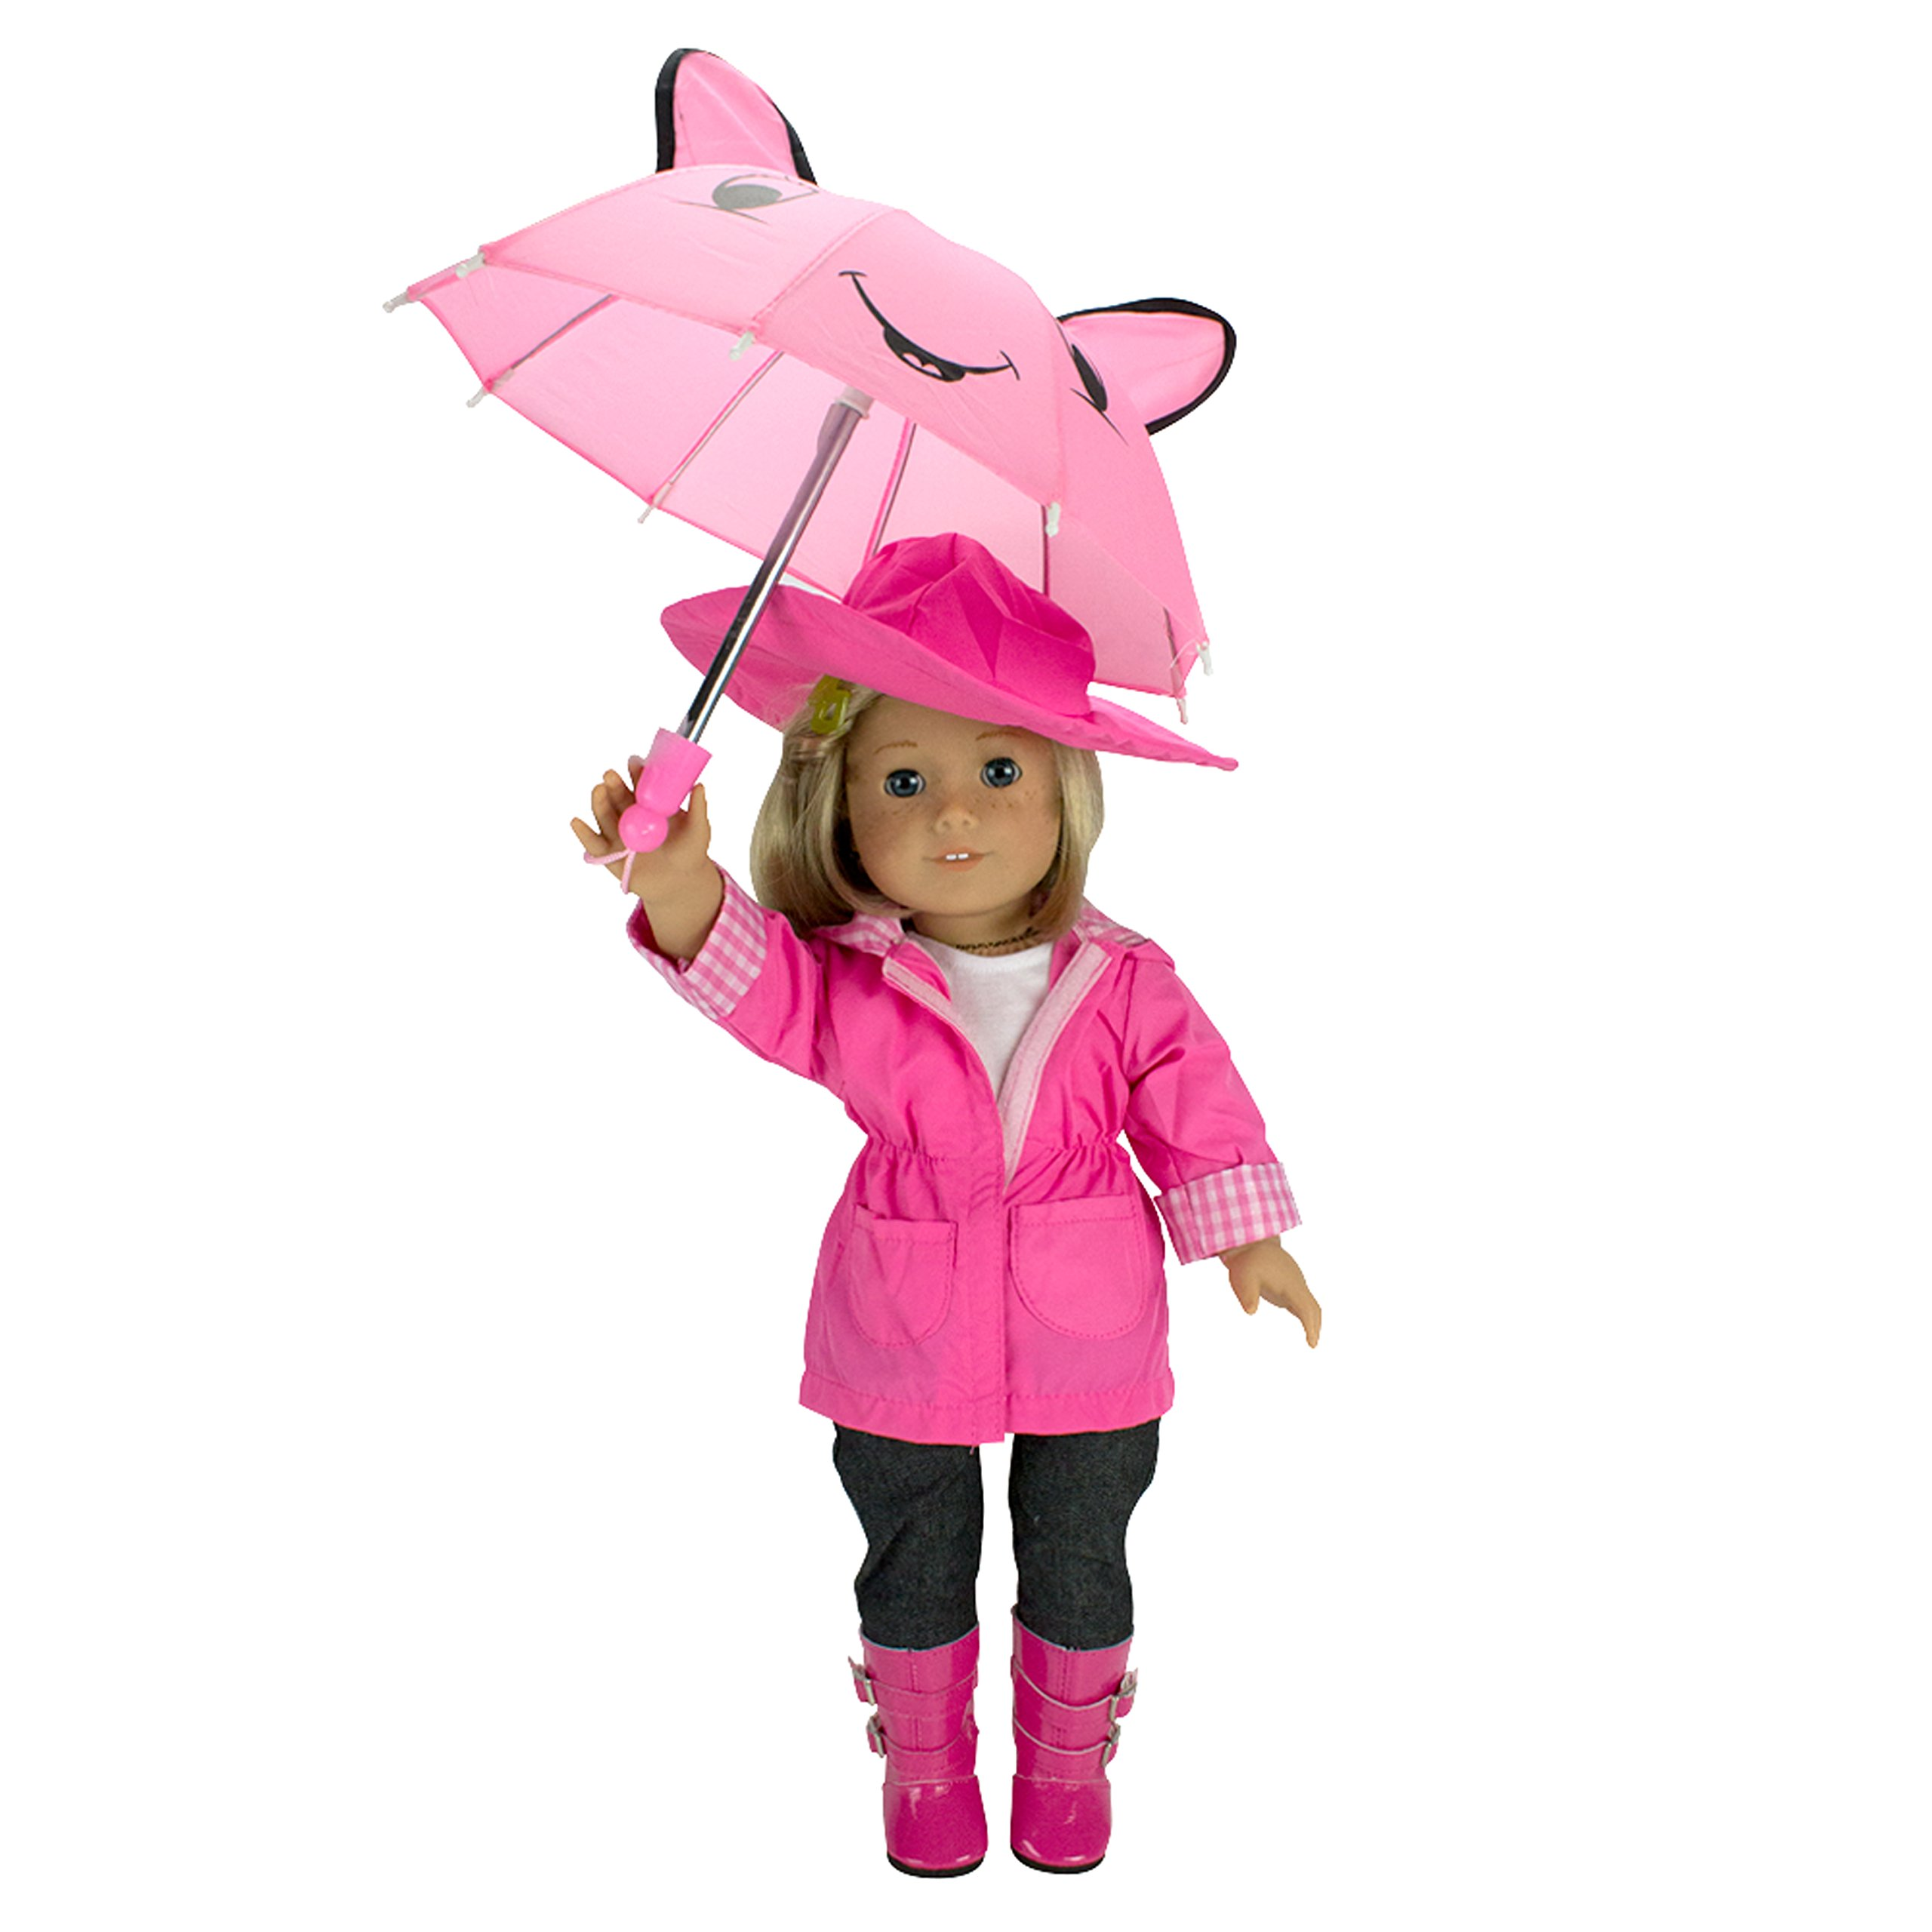 Dress Along Dolly Rain Coat Doll Clothes for American Girl Dolls:- Includes Rain Jacket, Umbrella, Boots, Hat, Pants, and Shirt by Dress Along Dolly